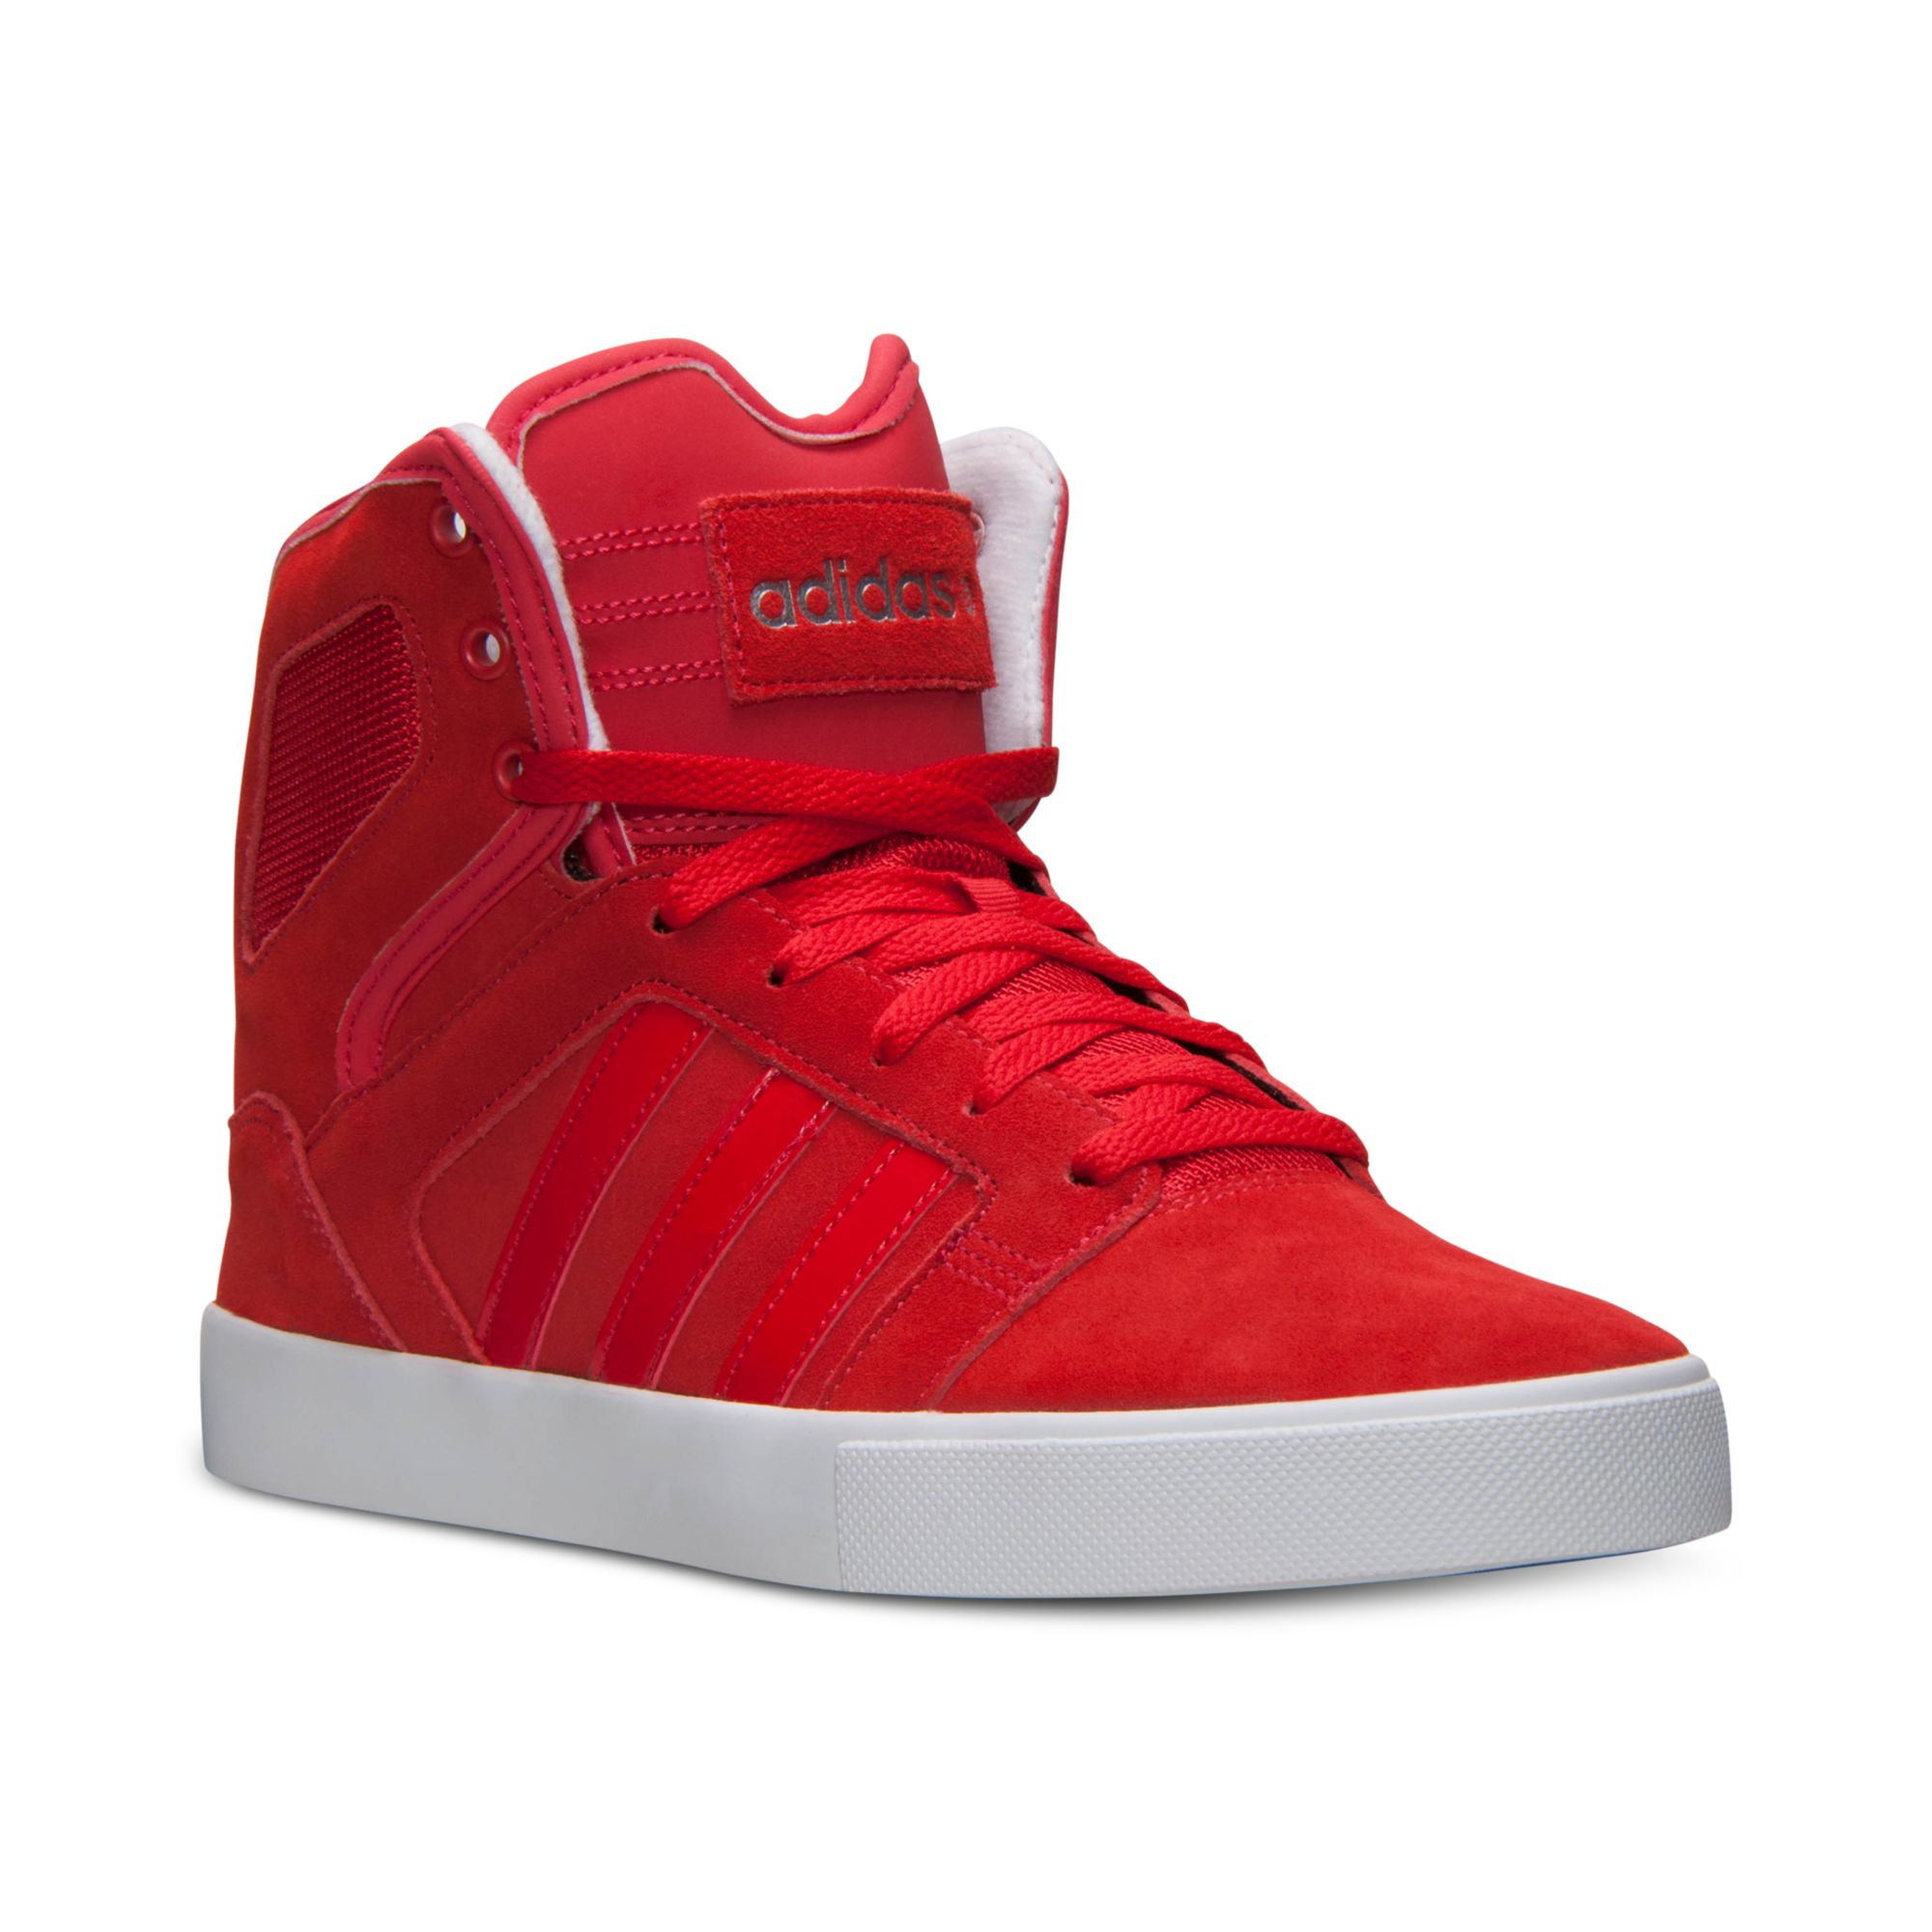 Red Top Adidas Hi Casual From Bbneo Sneakers For Men Line Men's Finish A54Lq3Rj